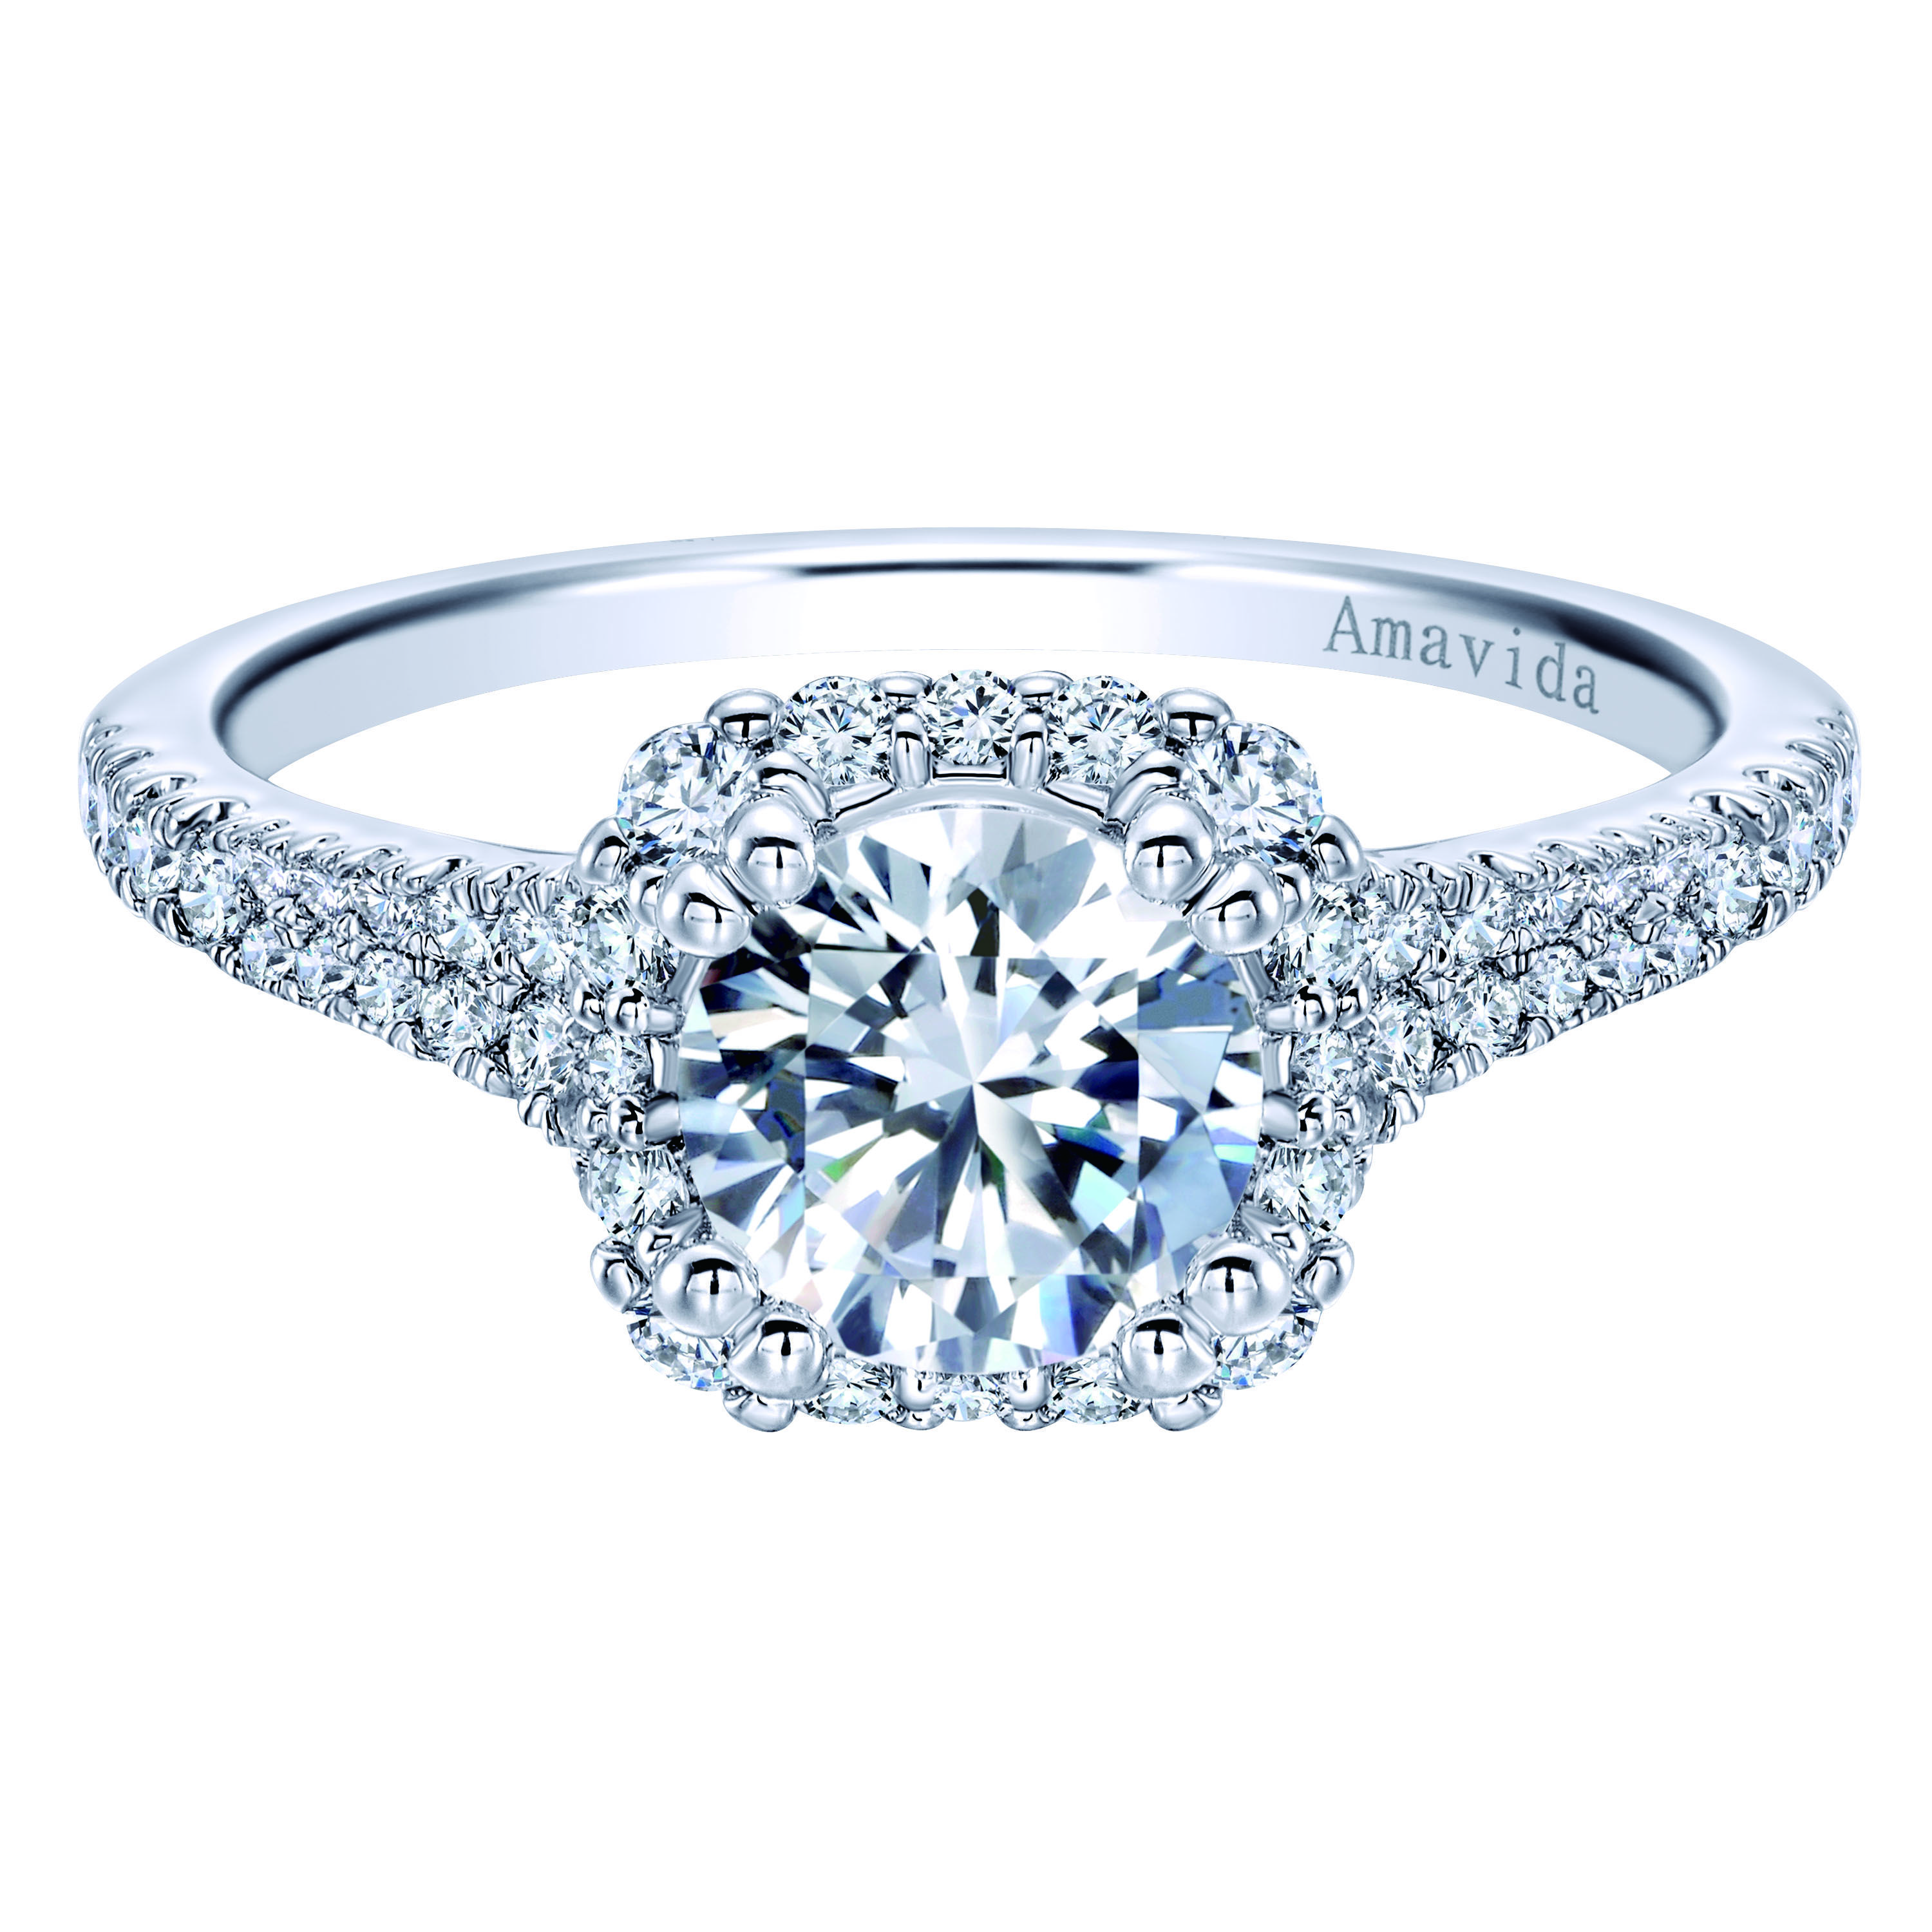 for you rings halo michael jewellers bespoke innerwest solitaire custom engagement sydney diamonds vs blingy jeweller arthur best design